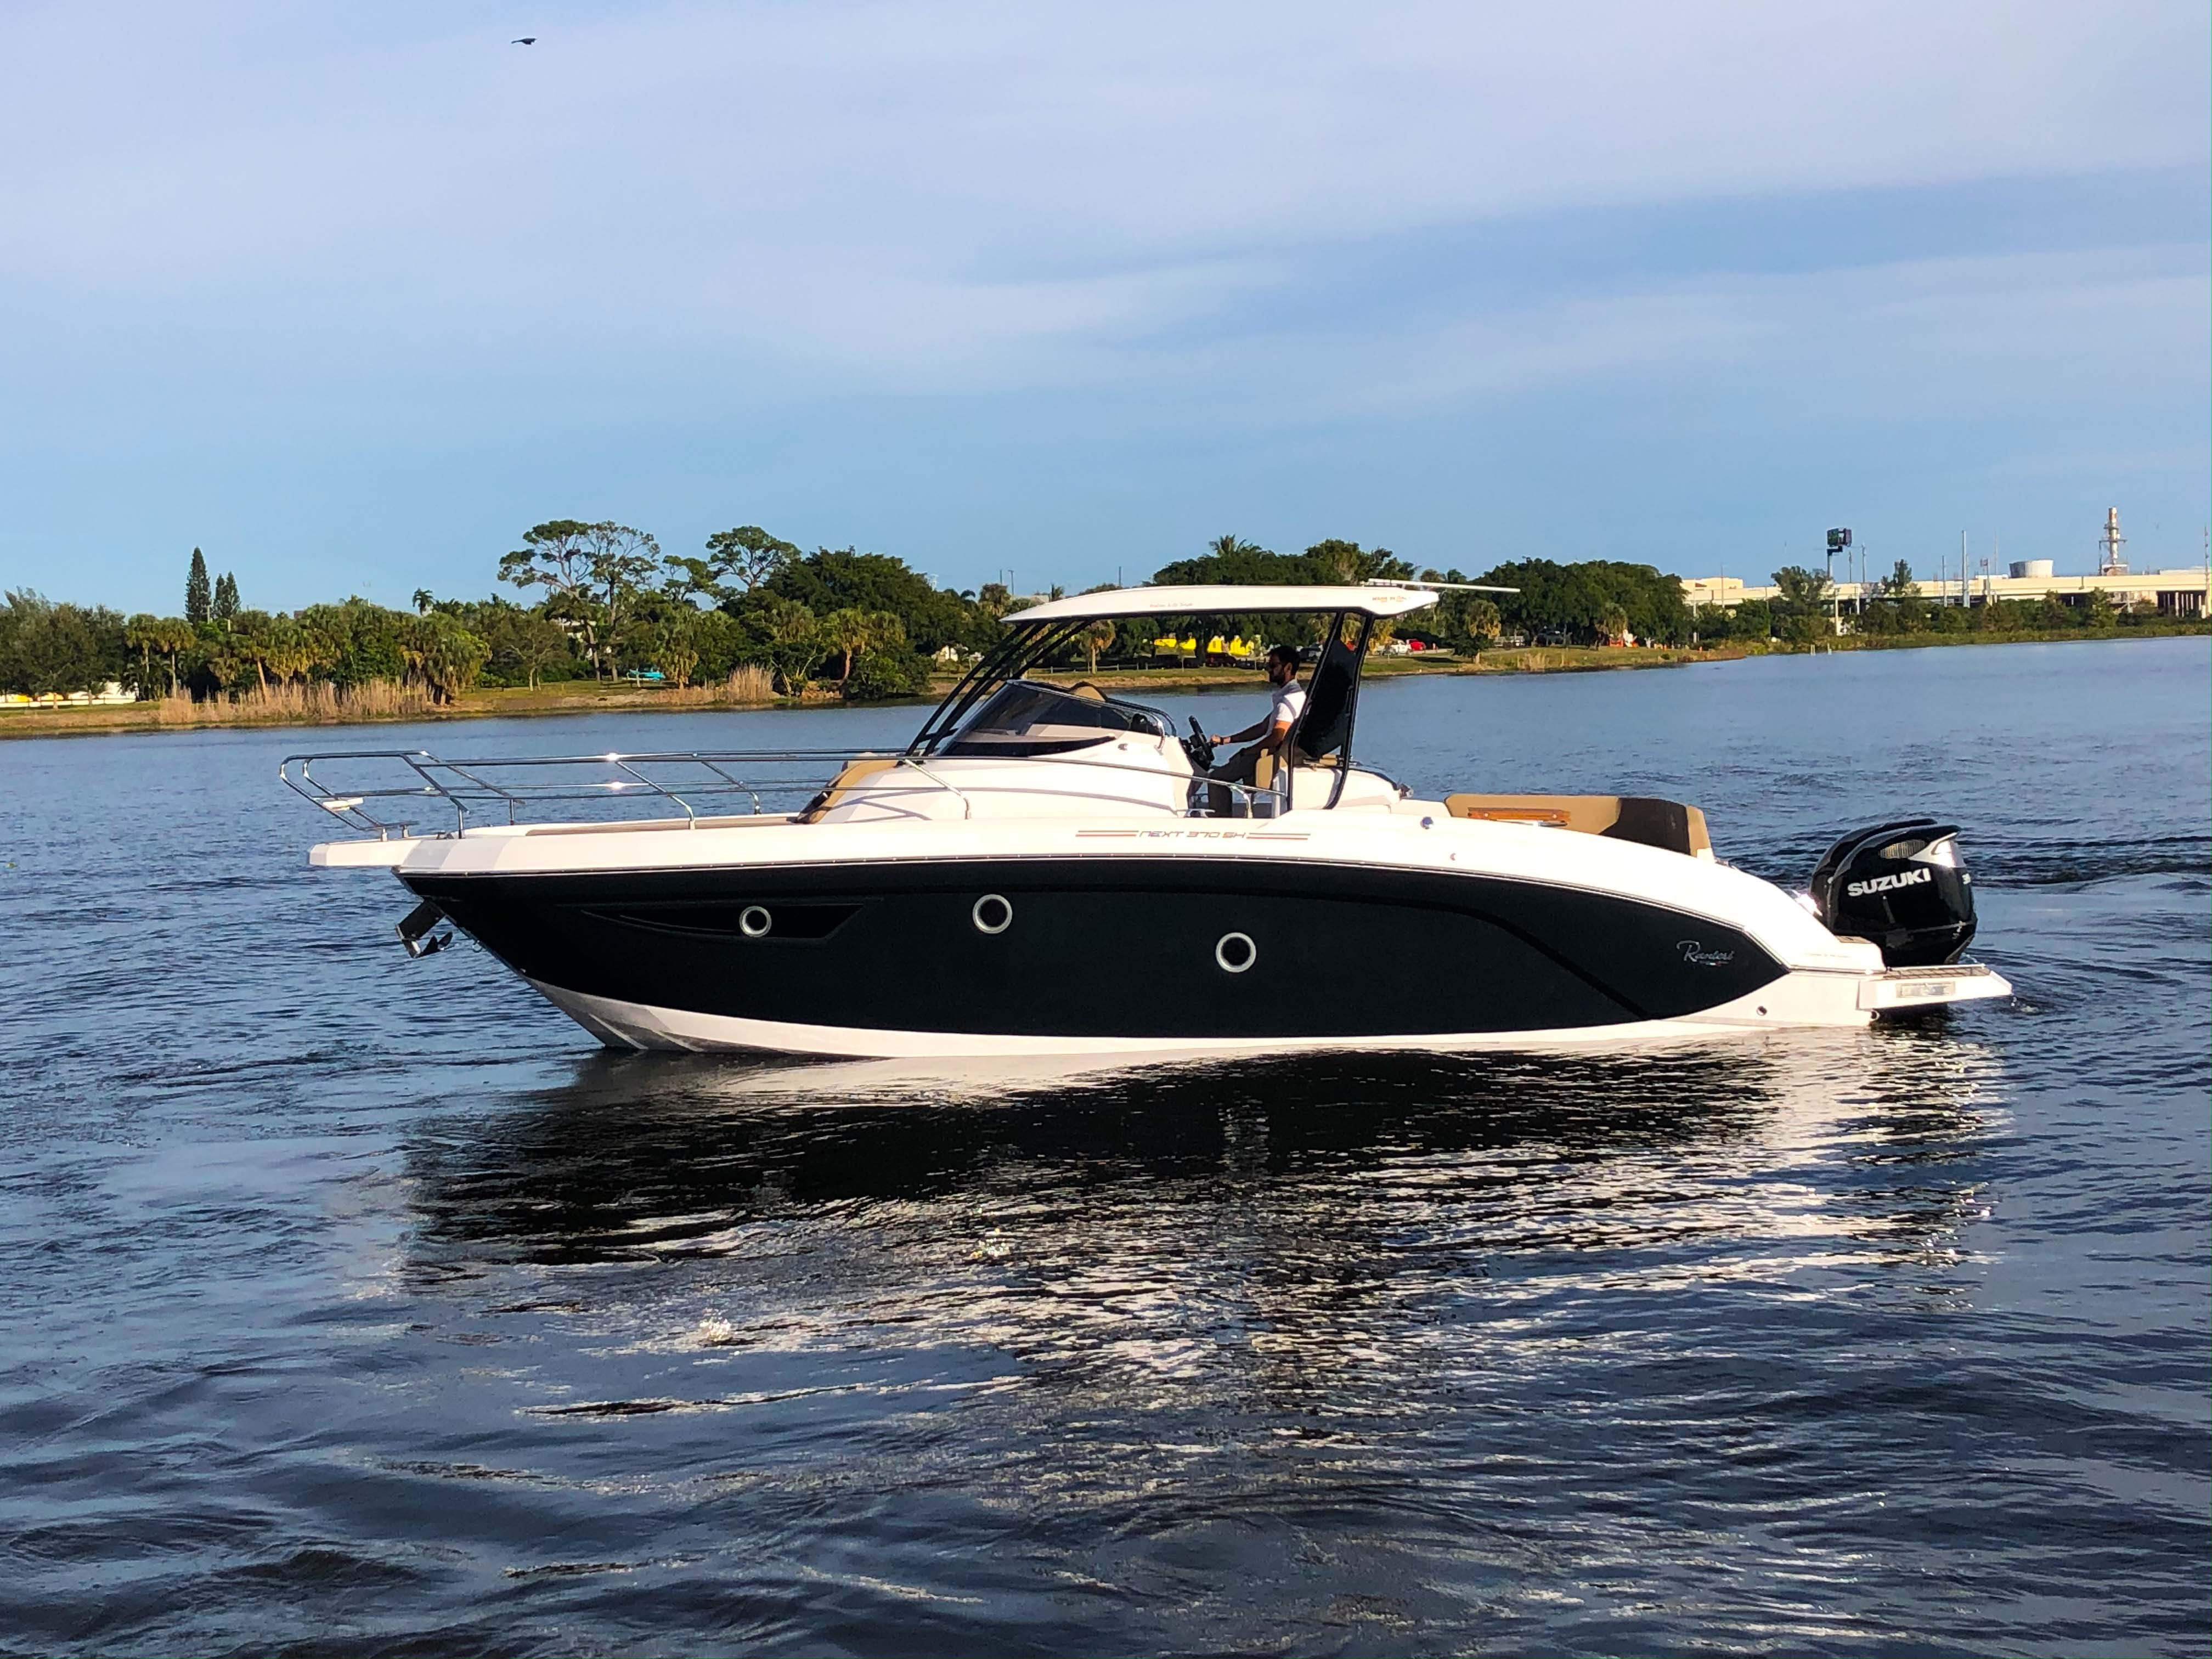 Thumbnail 54 for New 2019 Ranieri Next 370 SH boat for sale in West Palm Beach, FL